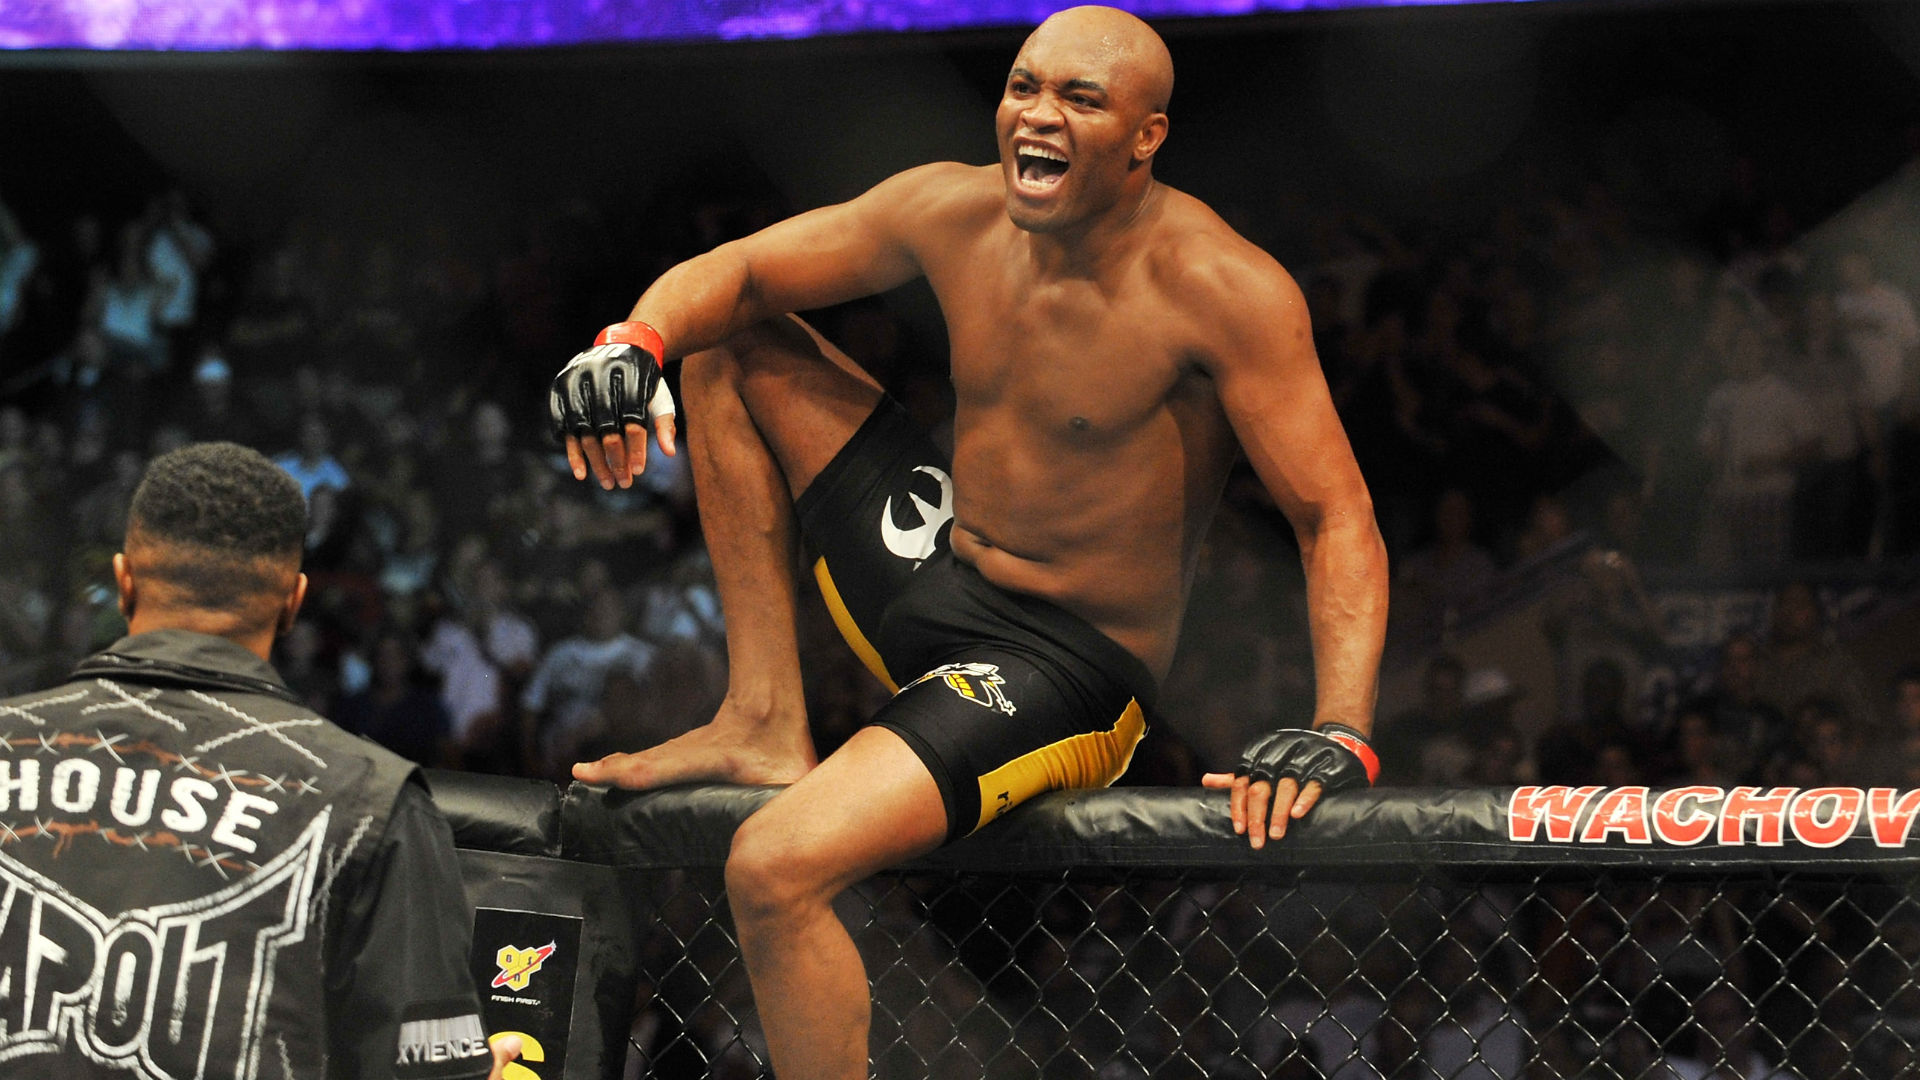 Anderson Silva is one of the most popular MMA fighters of all time